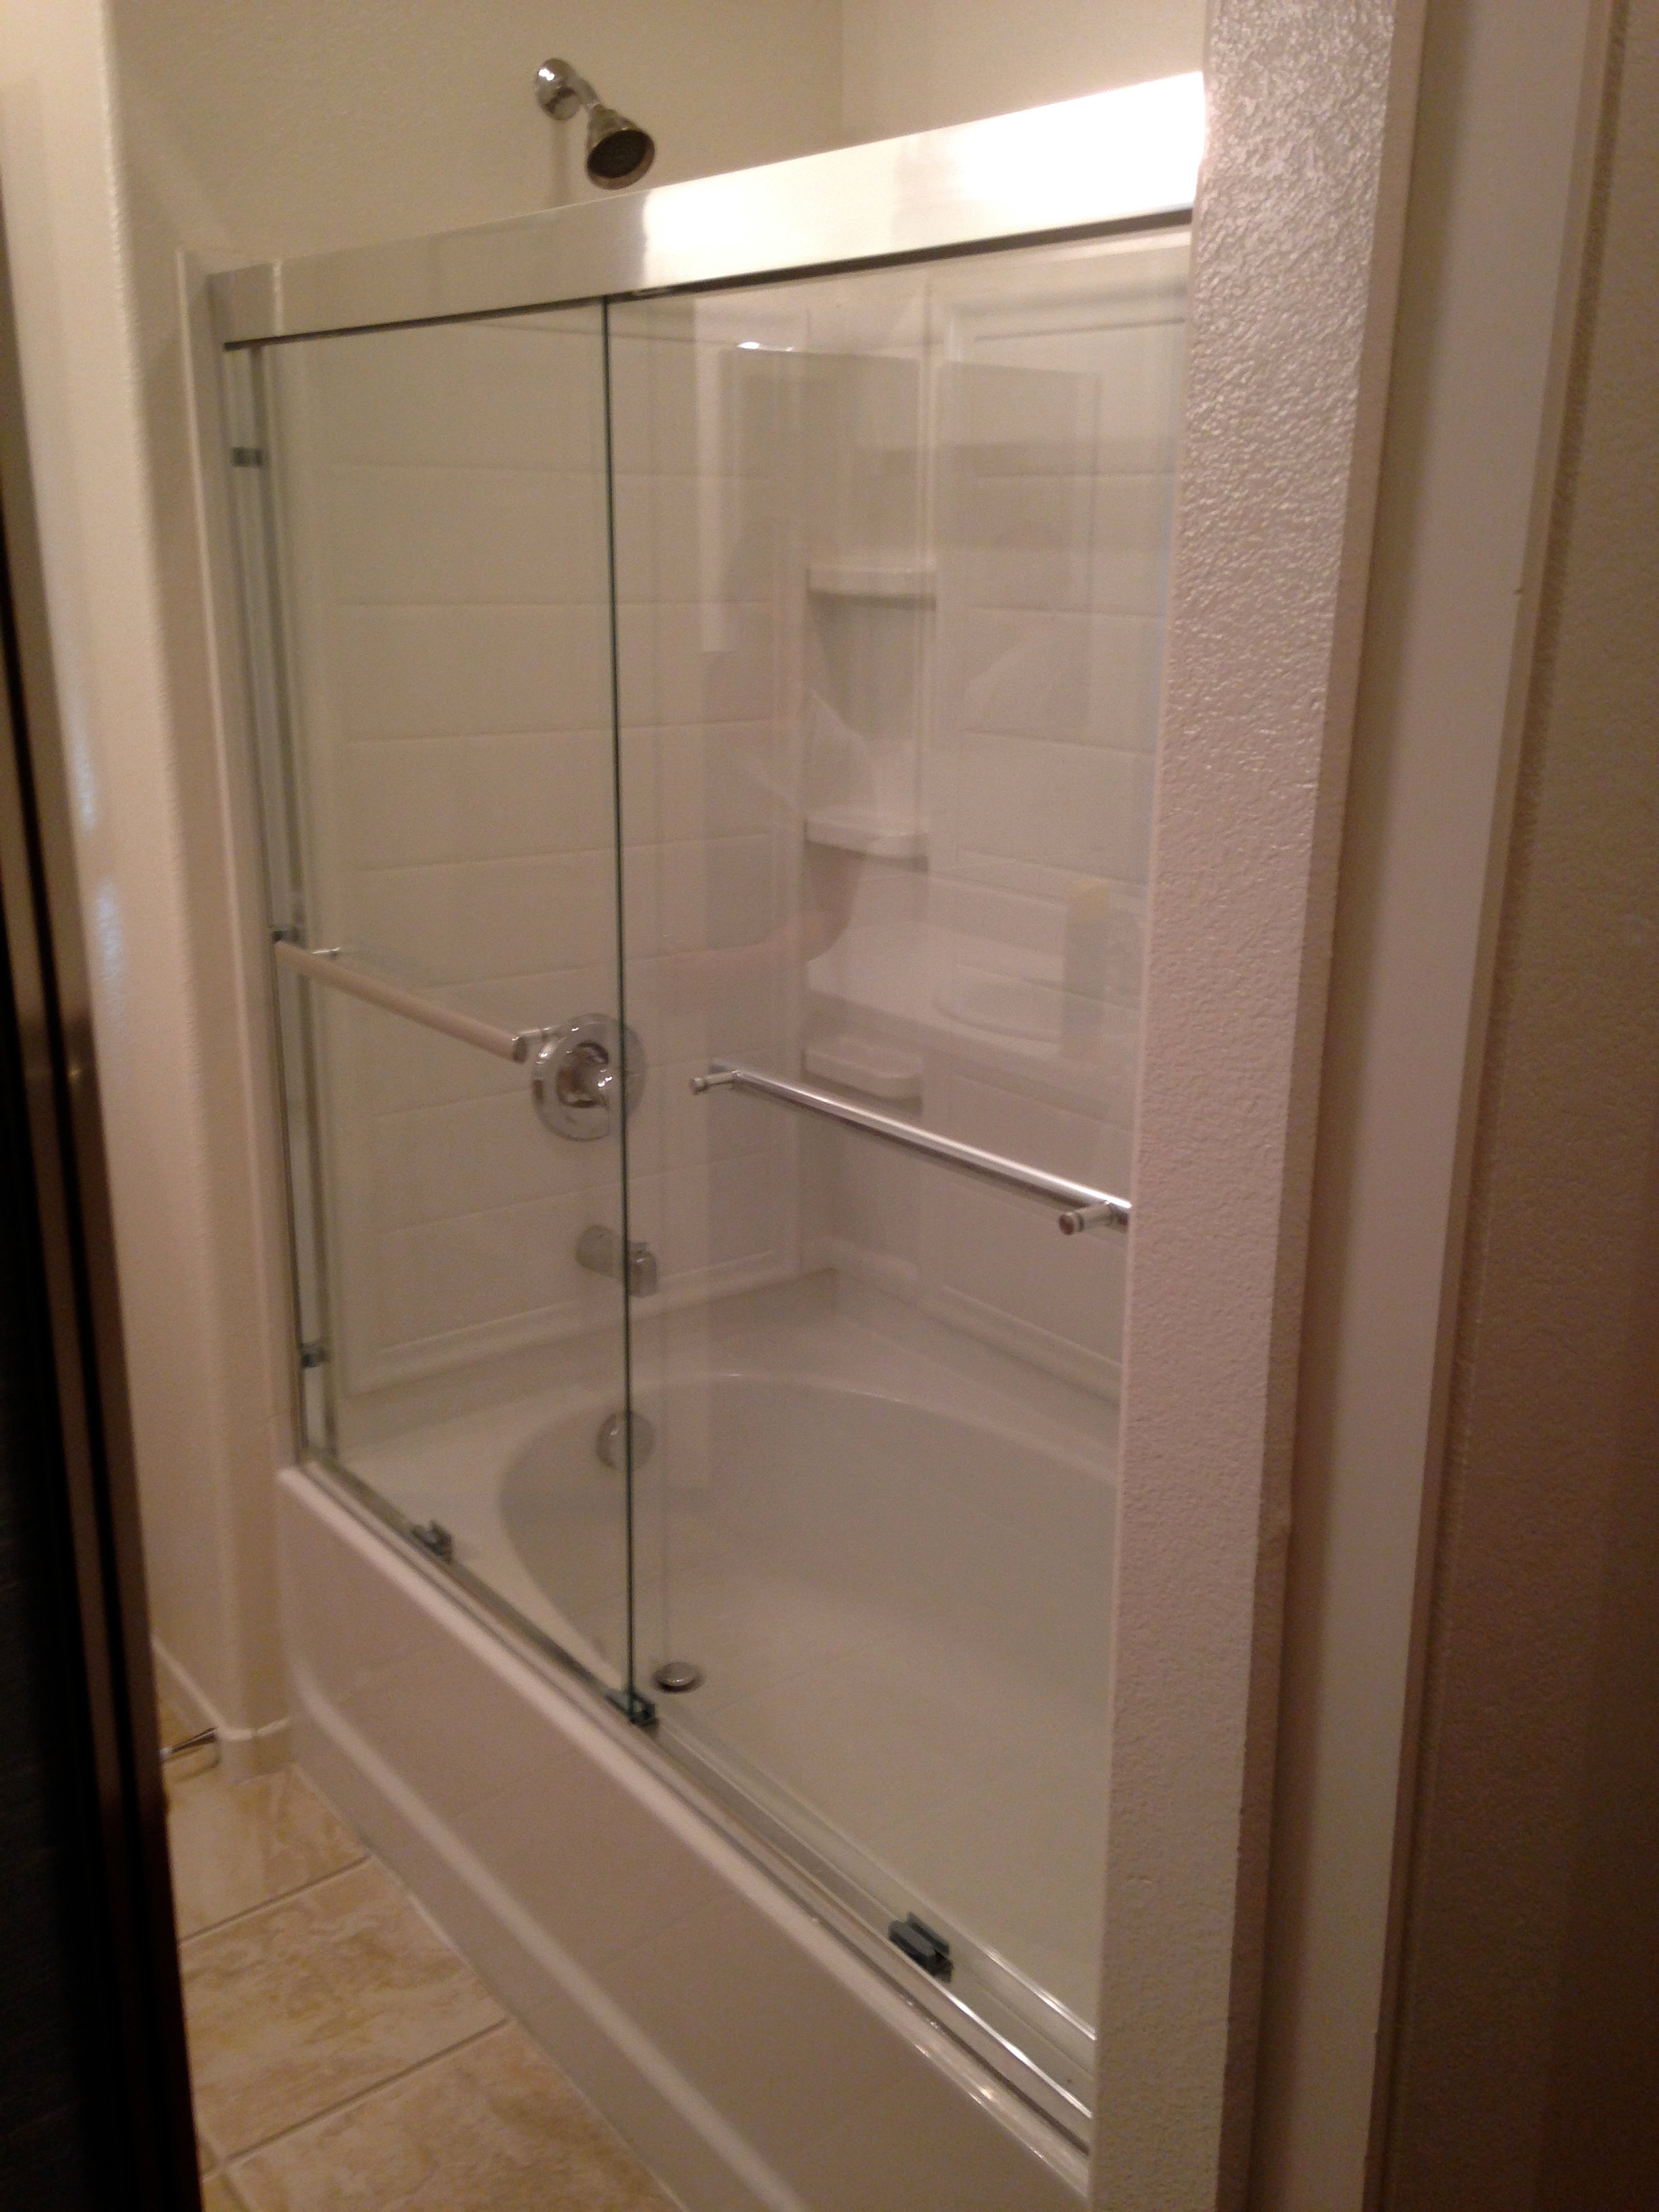 Shower Door Repair Las Vegas Sevenstonesinc